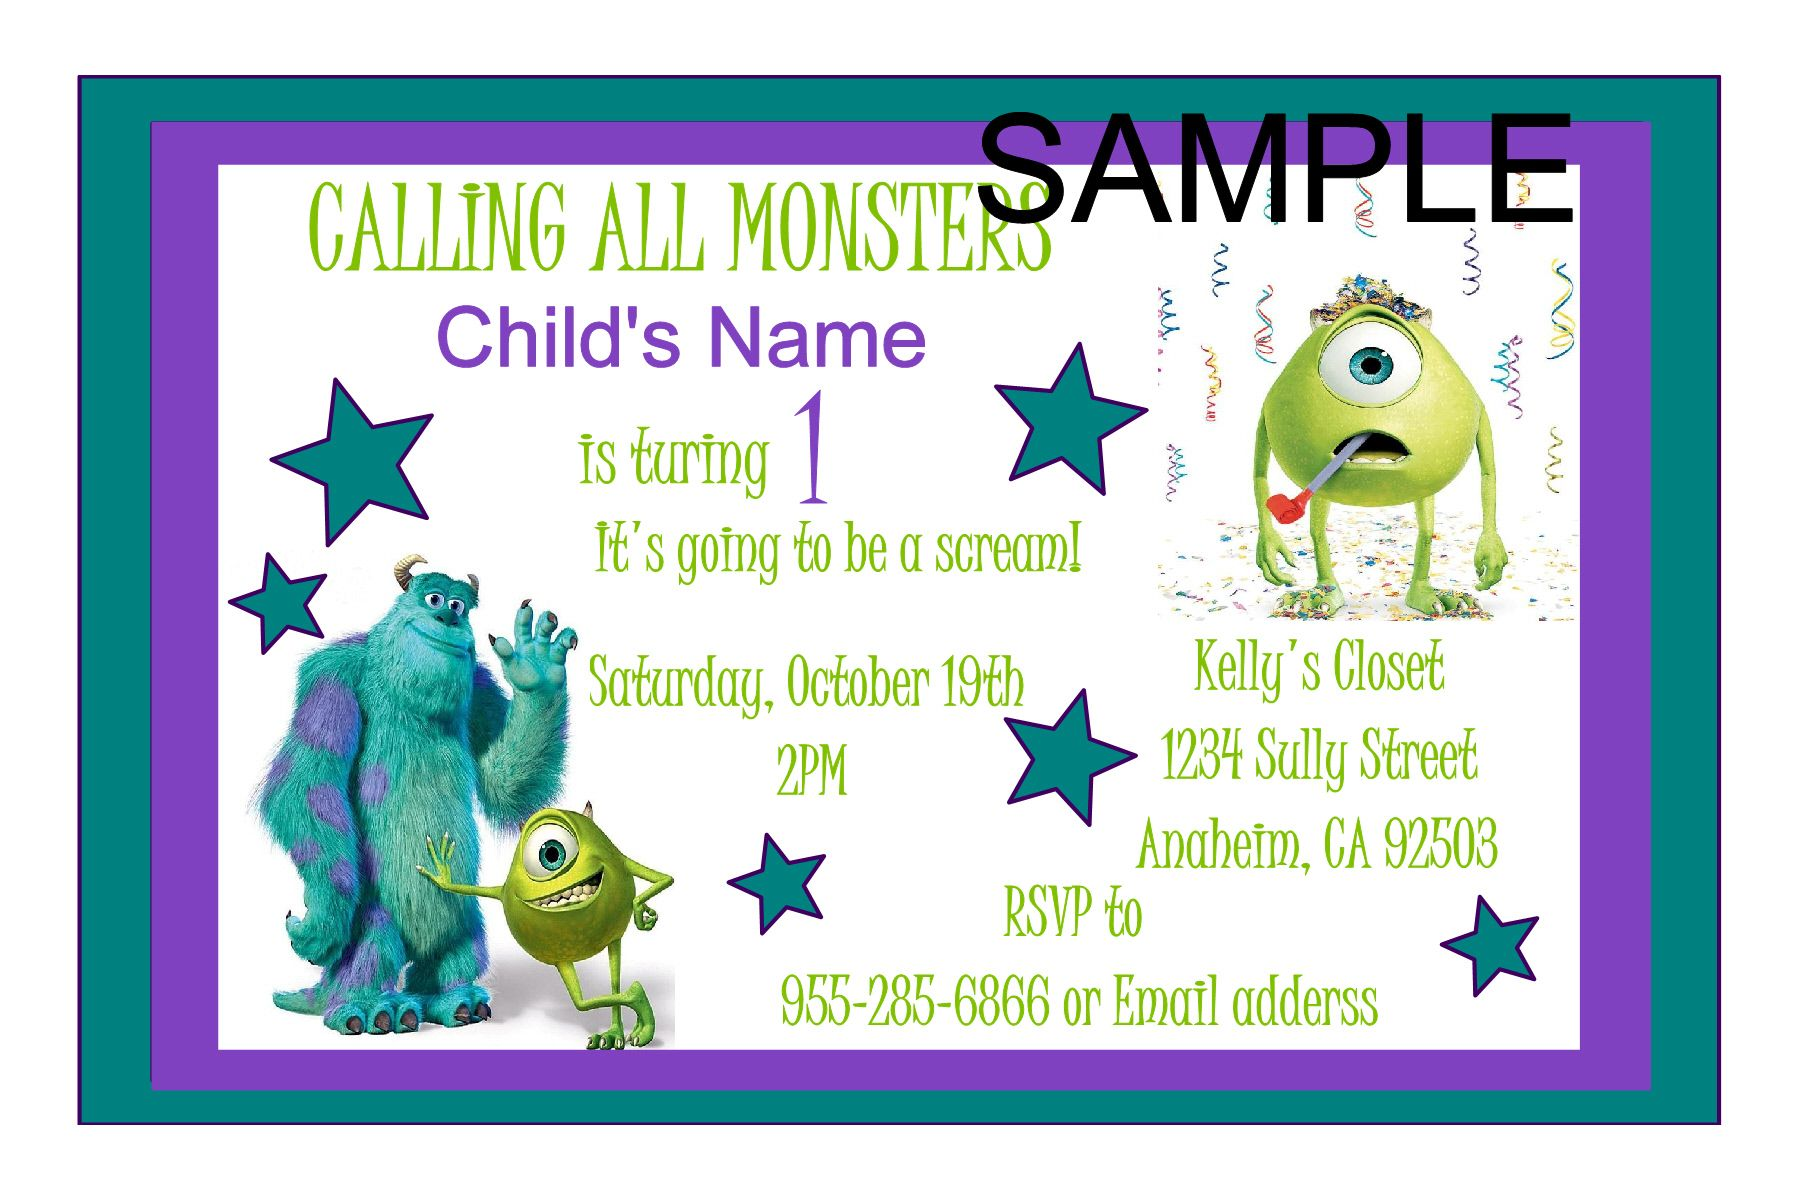 Monsters Inc. Birthday Invitation - Click to order yours today ...